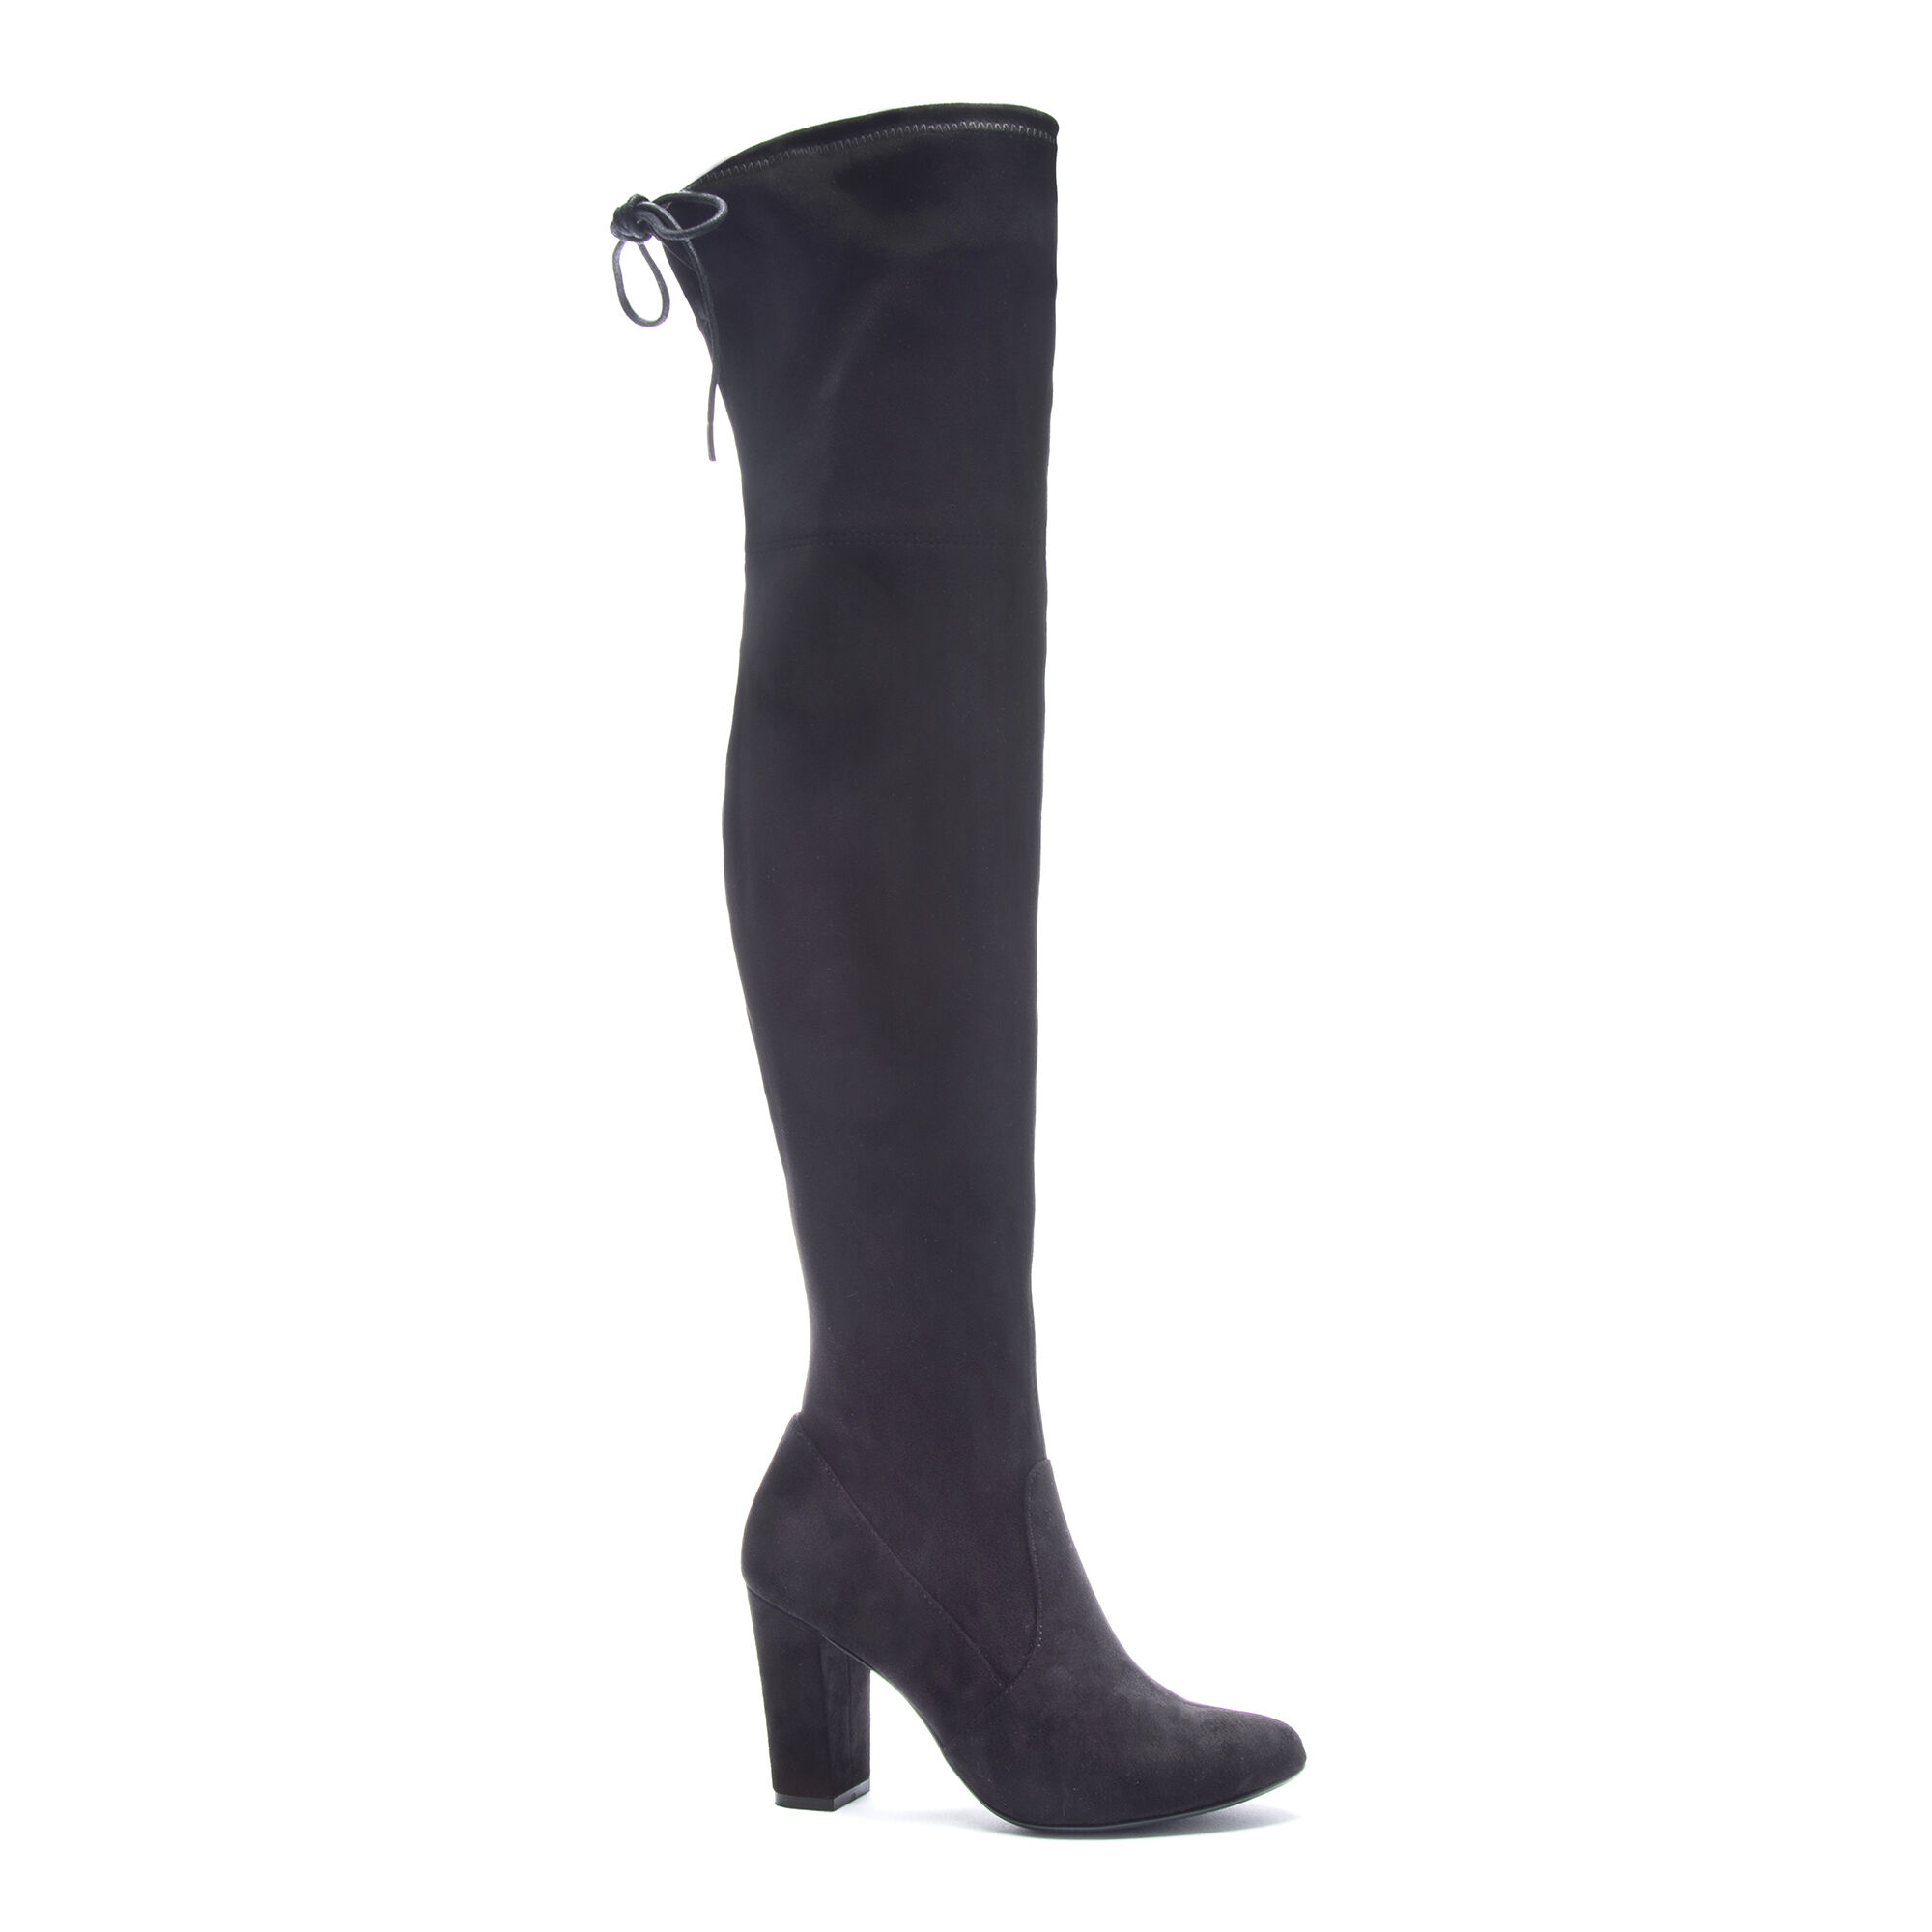 08009883ebe9 Brinna Faux Suede Over the Knee Boot Heels